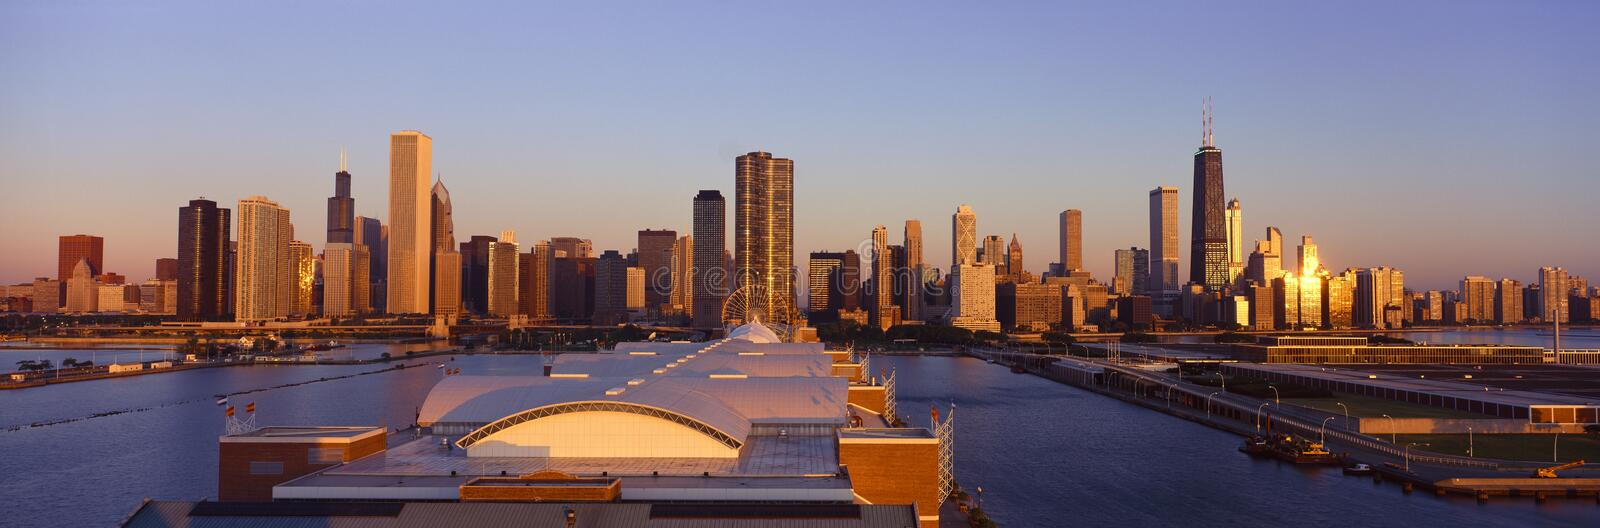 Panoramic view of Navy Pier and Chicago skyline at sunrise, Chicago, IL royalty free stock photos